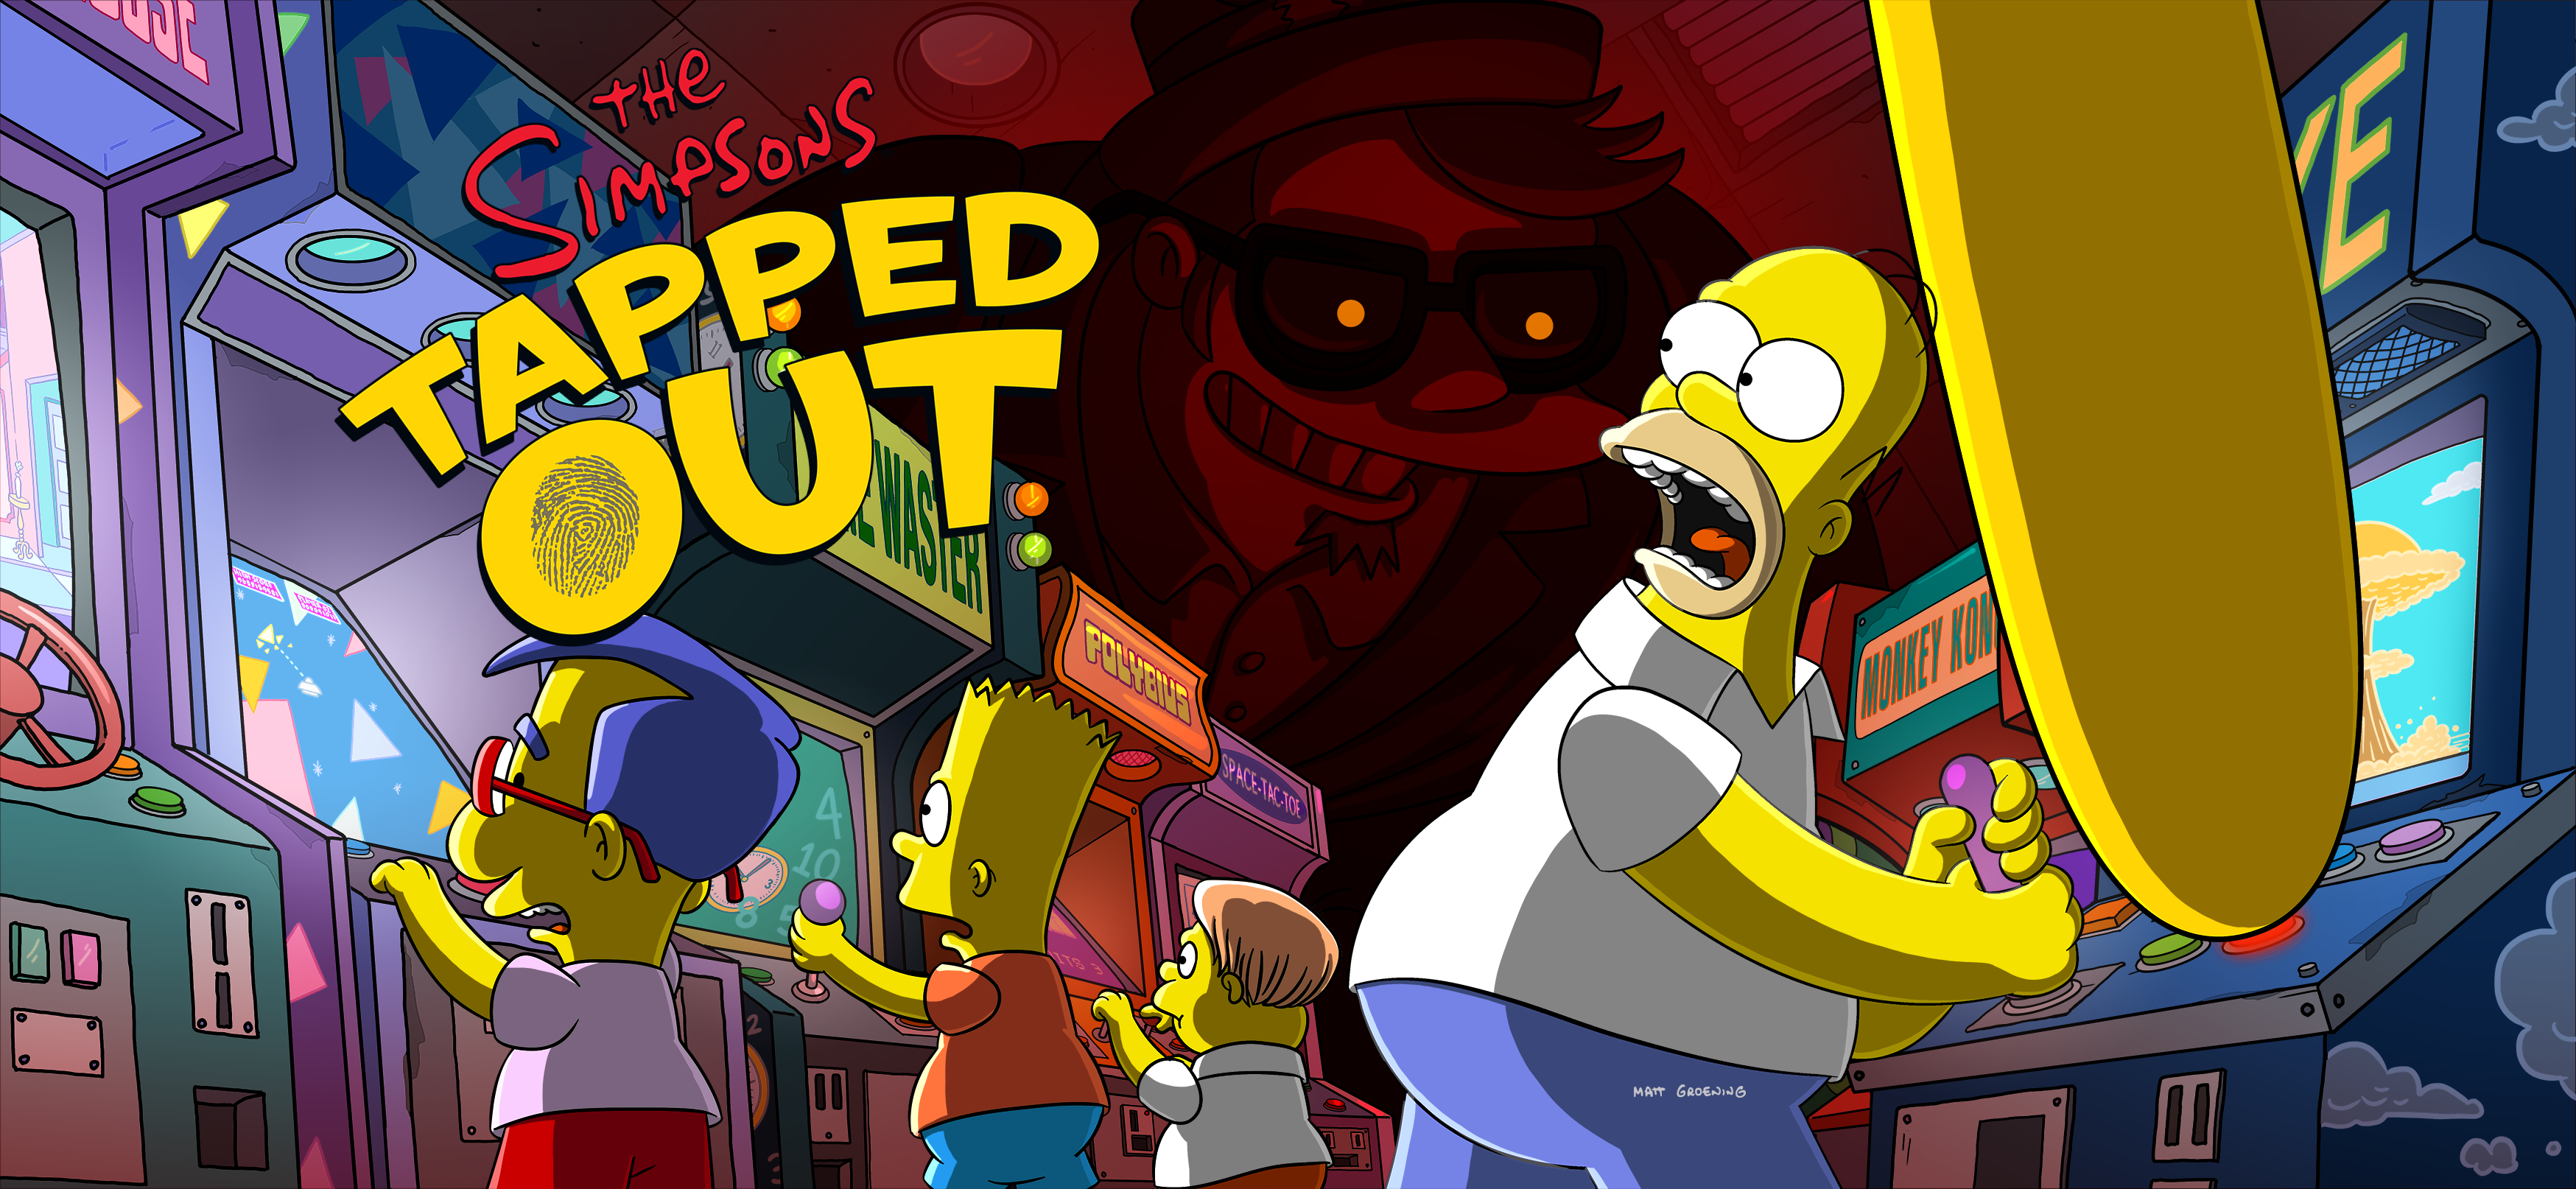 Tapped Out Halloween Event 2020 Cool Down Game of Games The Sequel 2020 Event | The Simpsons: Tapped Out